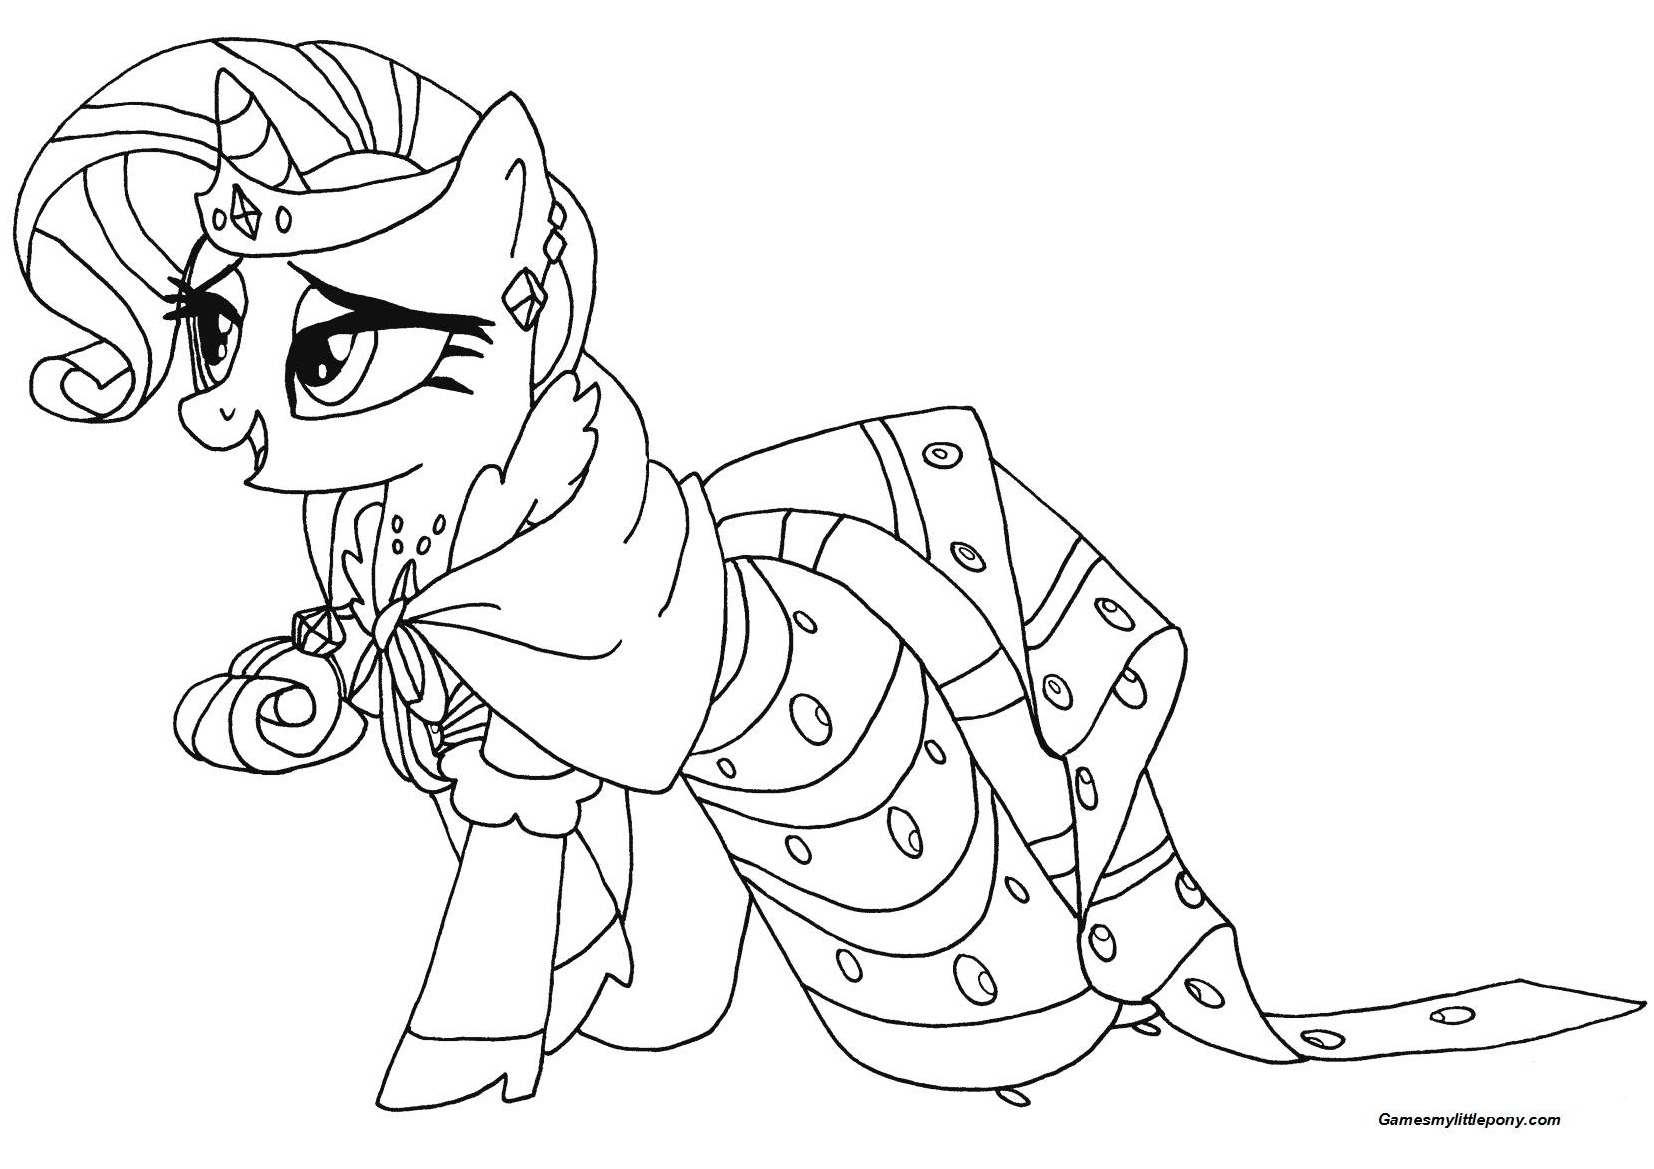 My Little Pony Rarity from My Little Pony